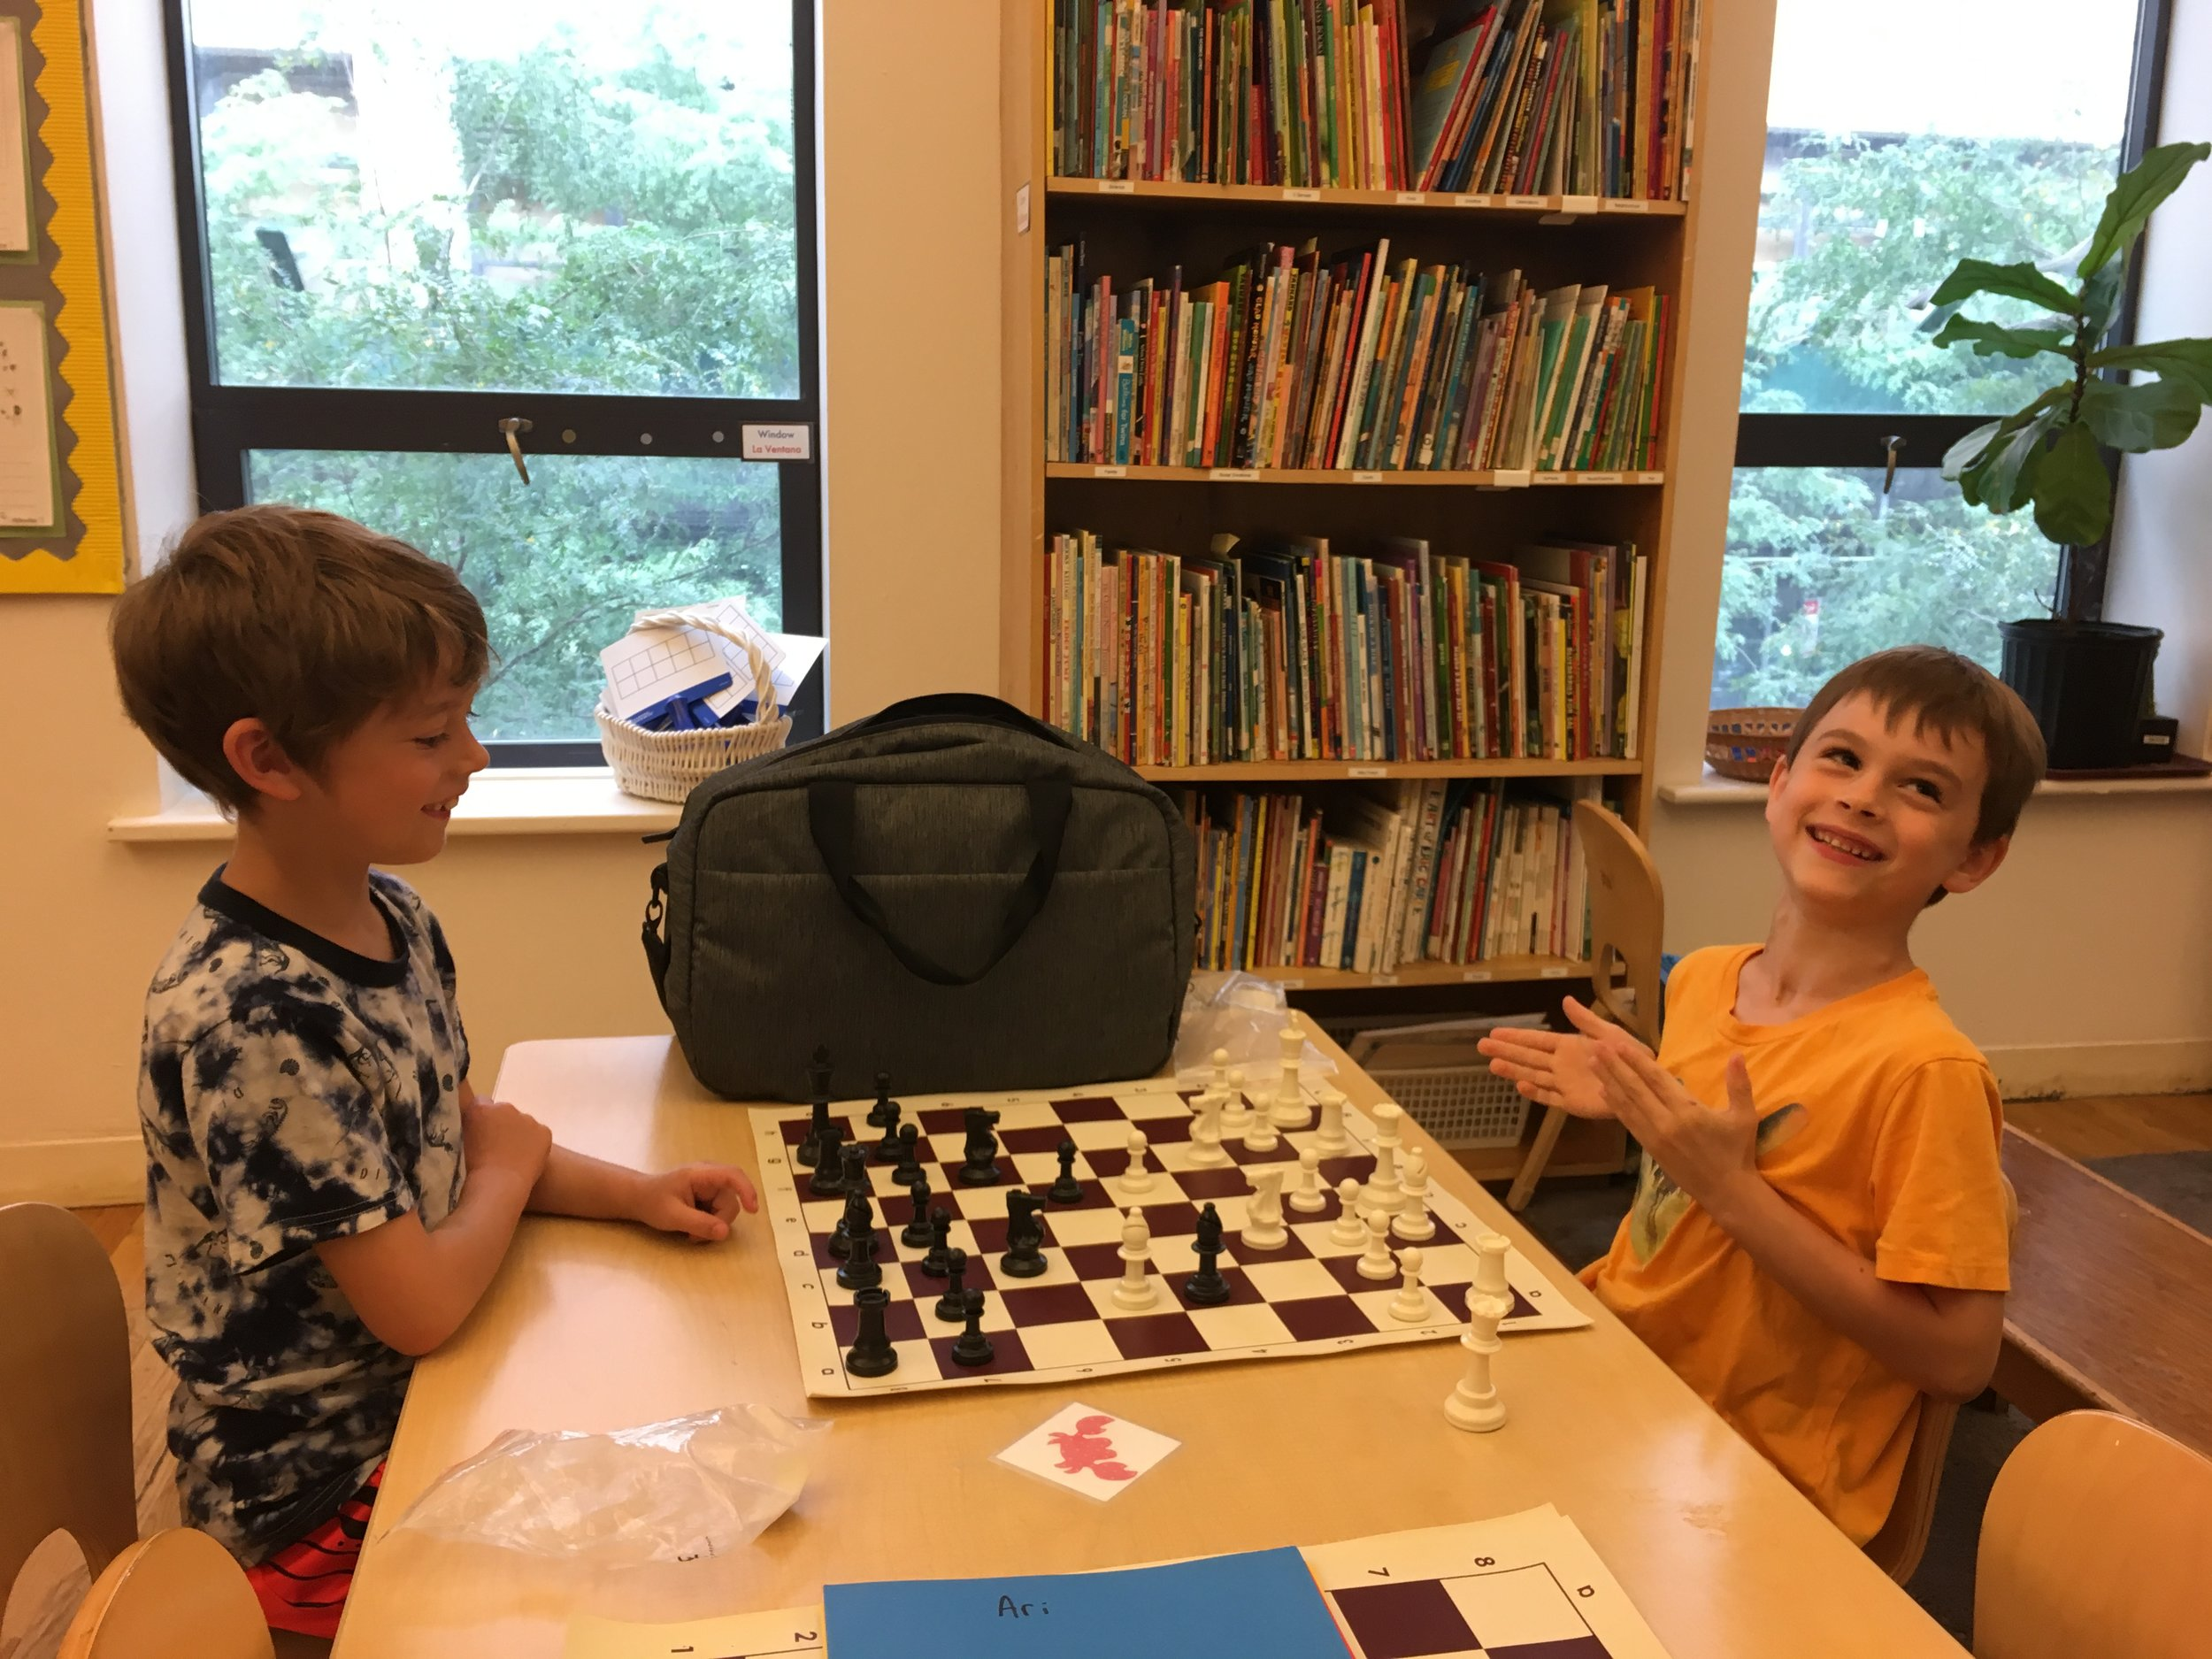 Students practice their skills during a session of Chess.